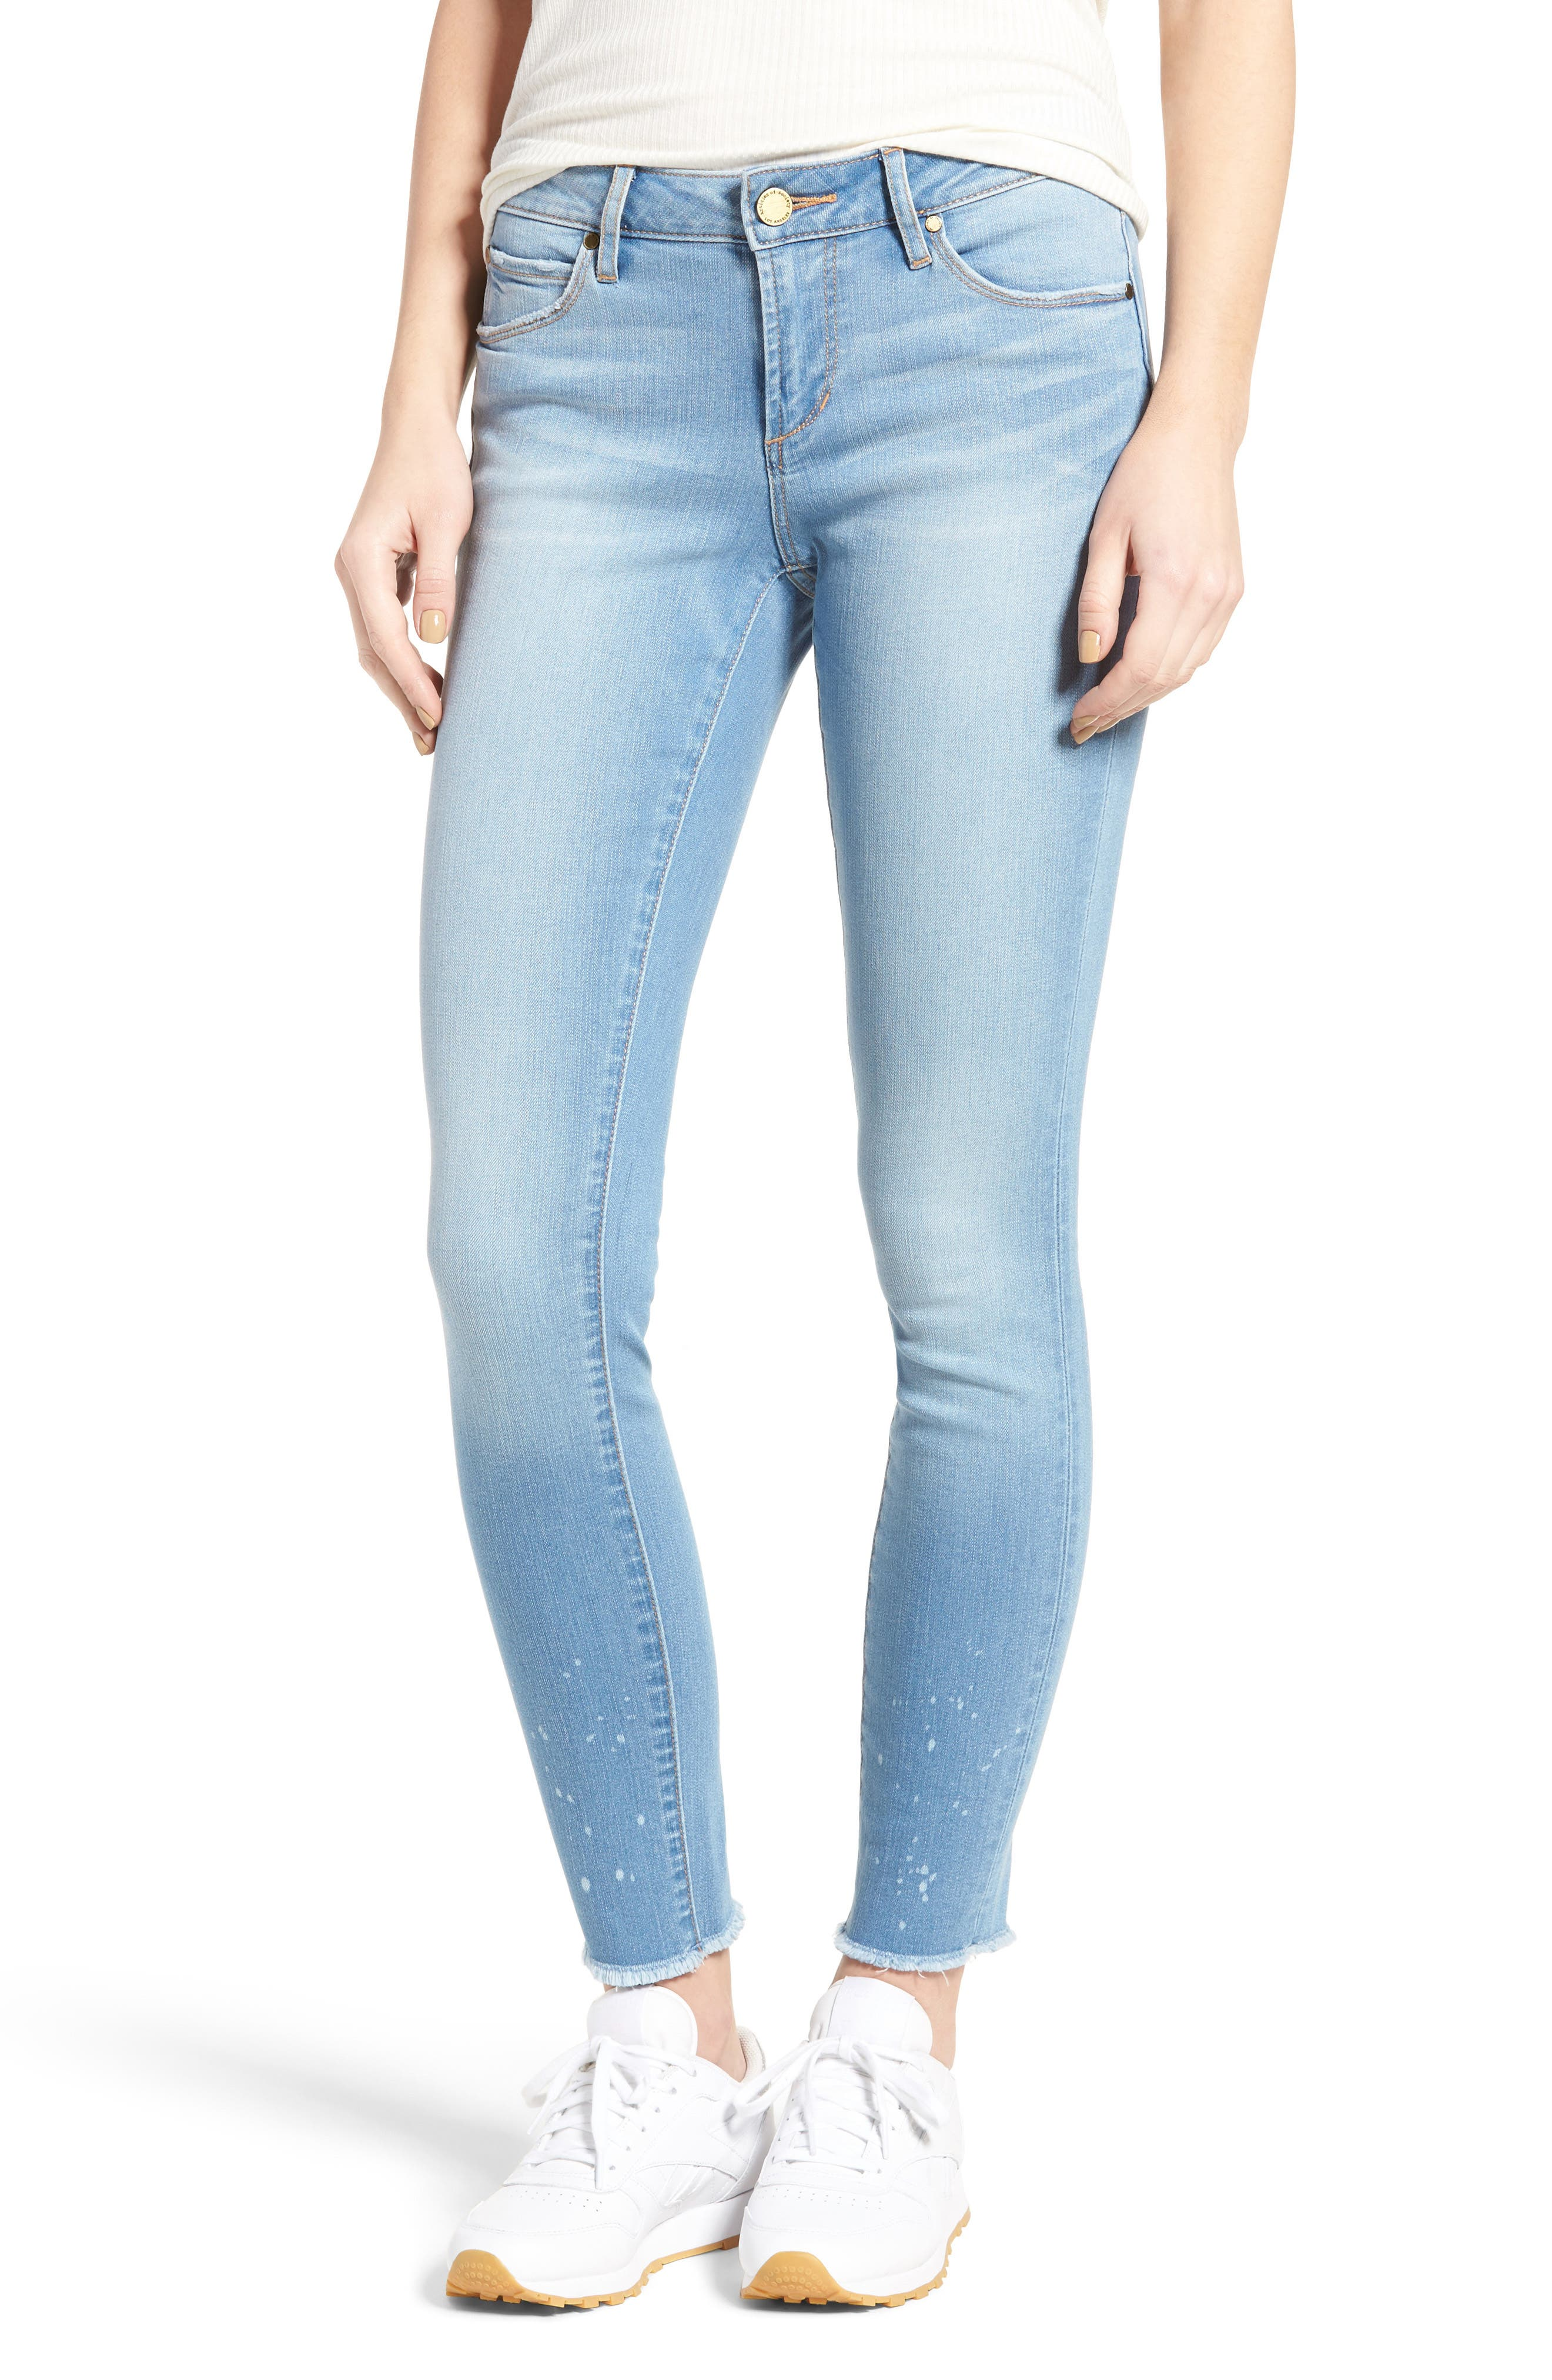 Alternate Image 1 Selected - Articles of Society Sarah Skinny Jeans (Bay)